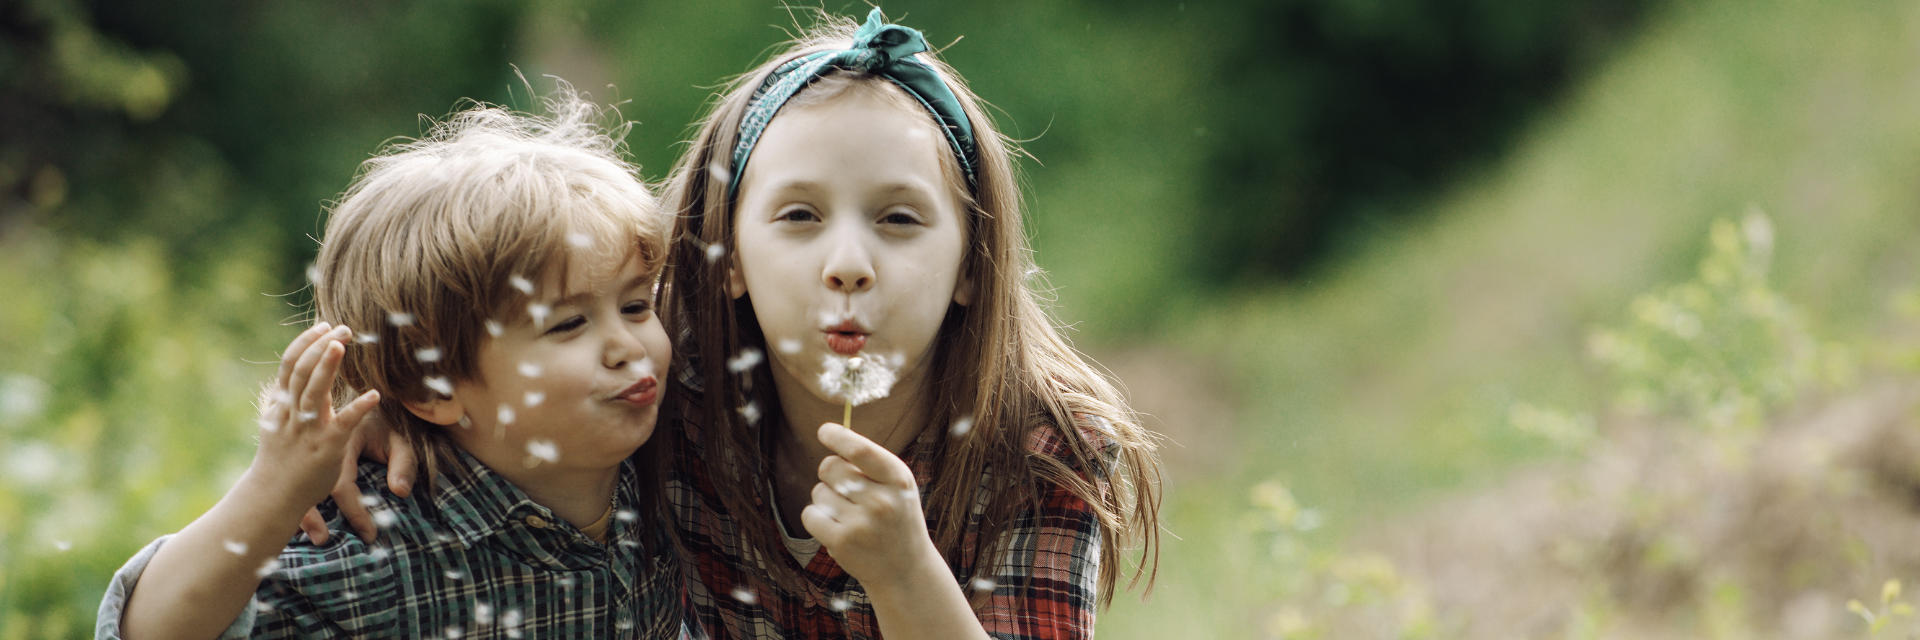 Little boy and girl blowing dandelion while playing in the garden